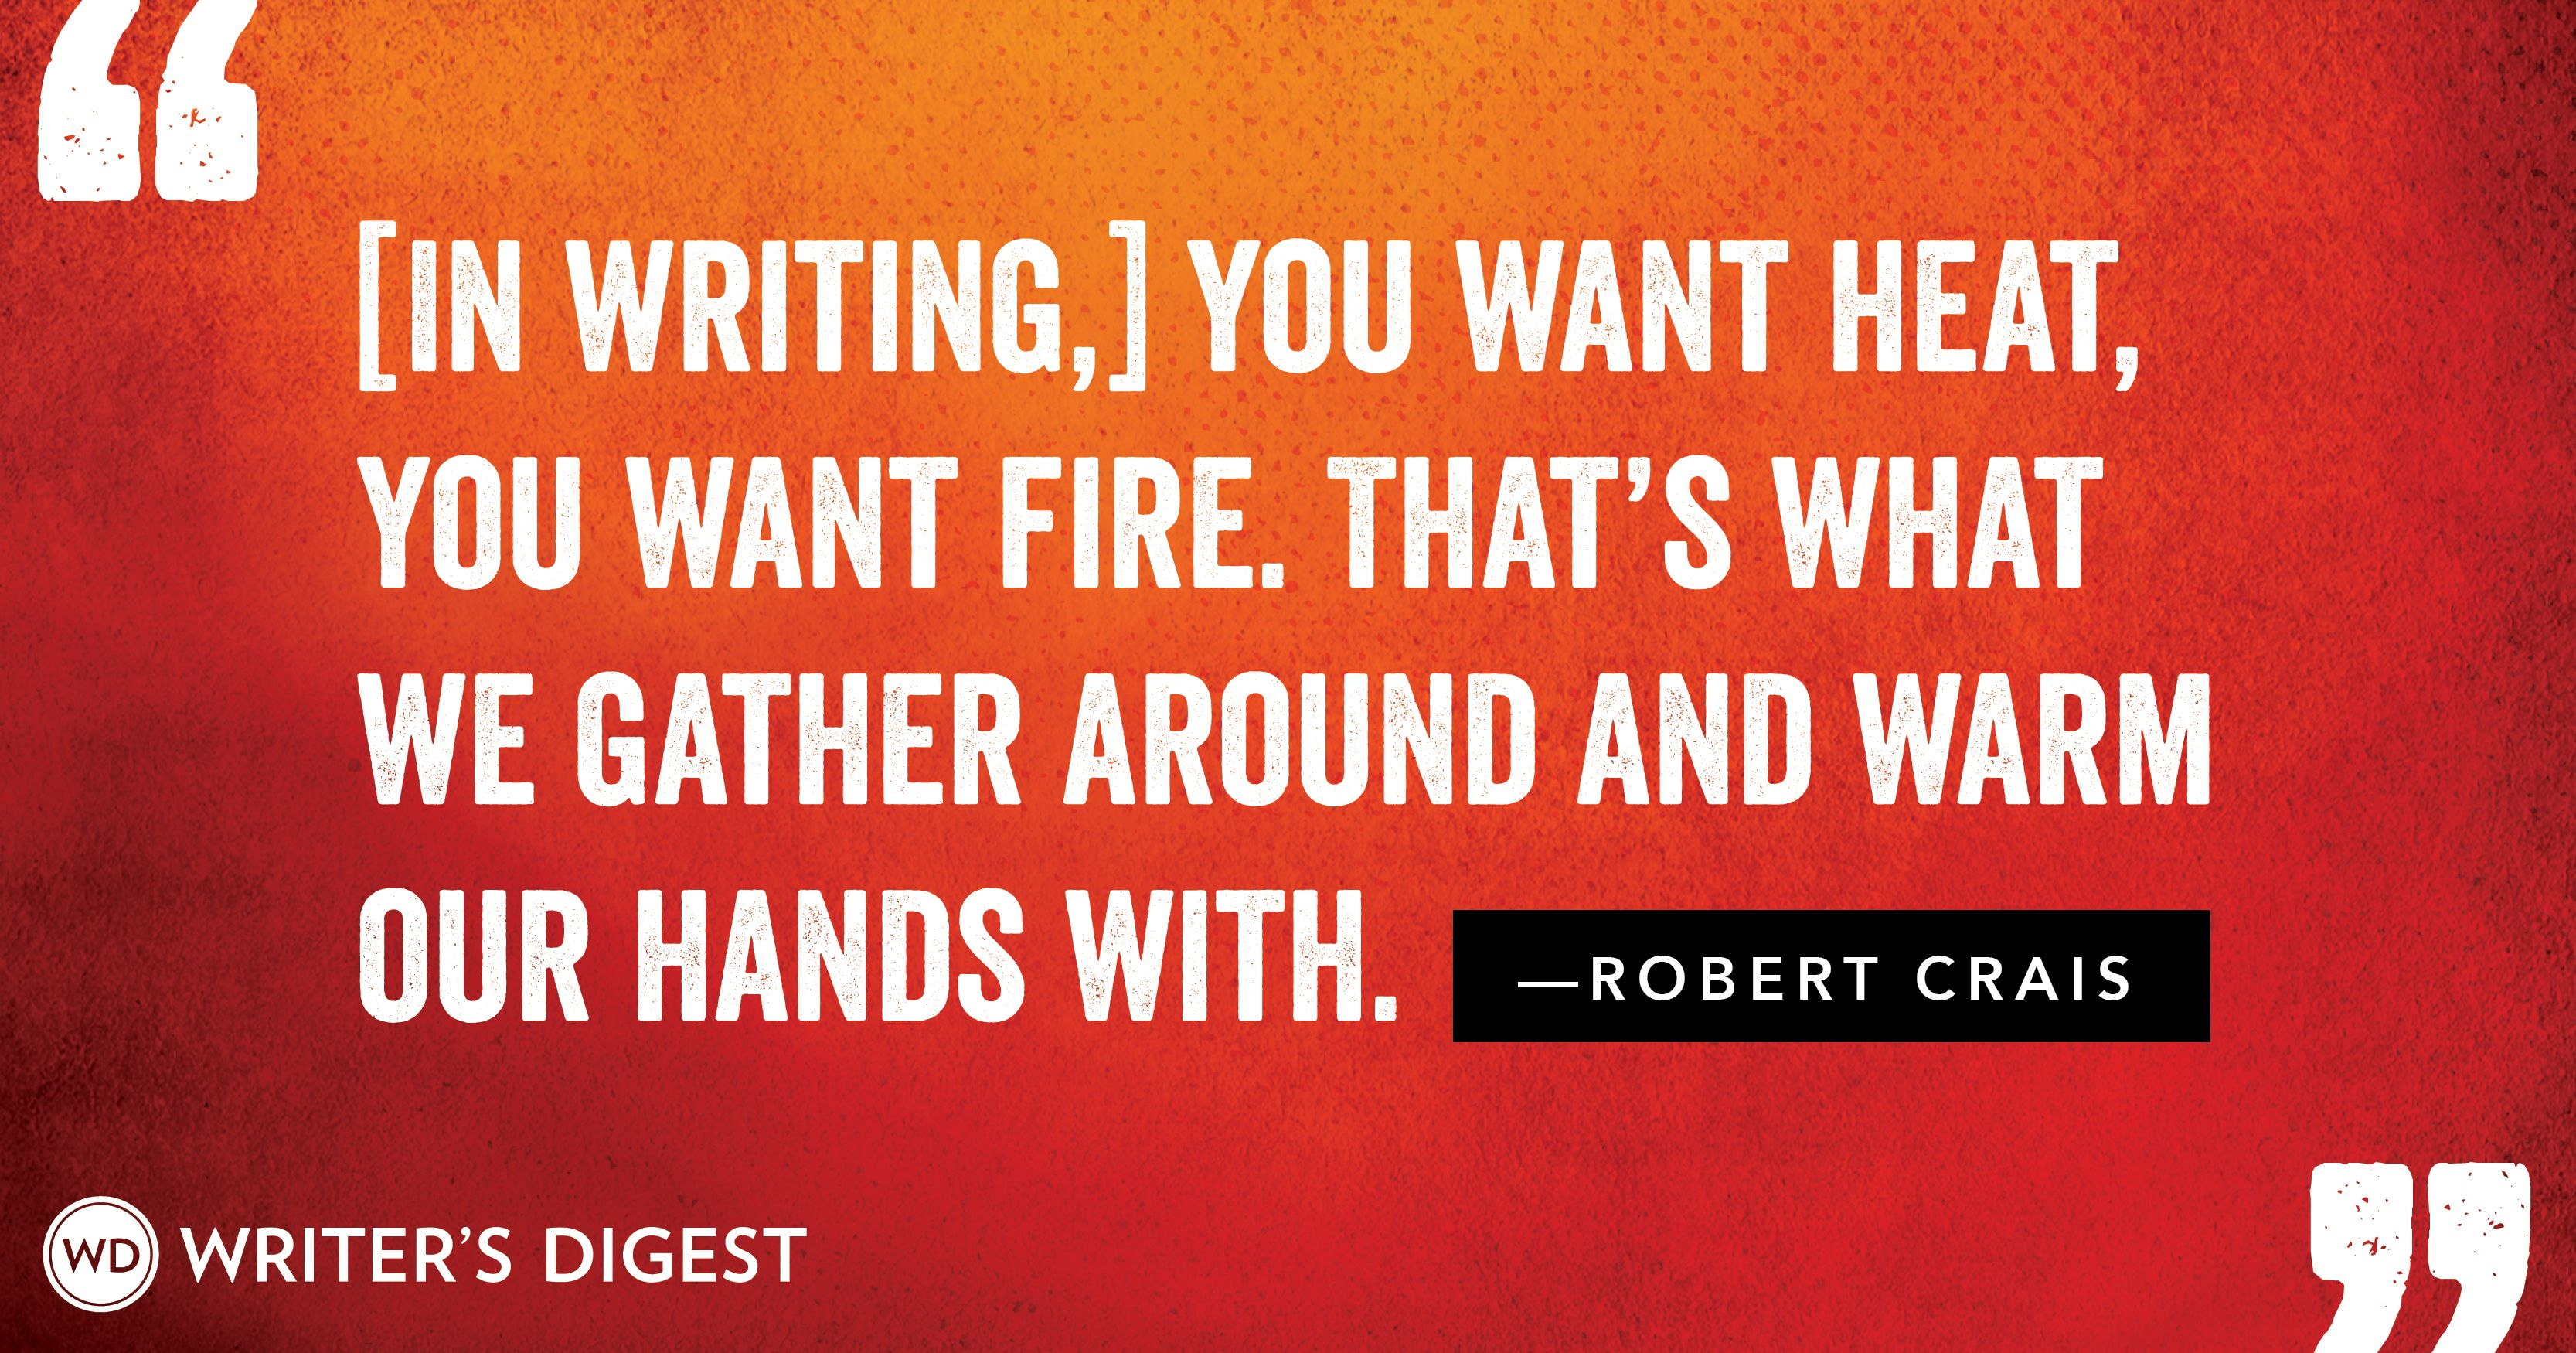 4 Free Extras From the New Writer's Digest - Boost your bank account and stay motivated to keep writing with these 4 free online exclusives from the November/December 2016 Writer's Digest.